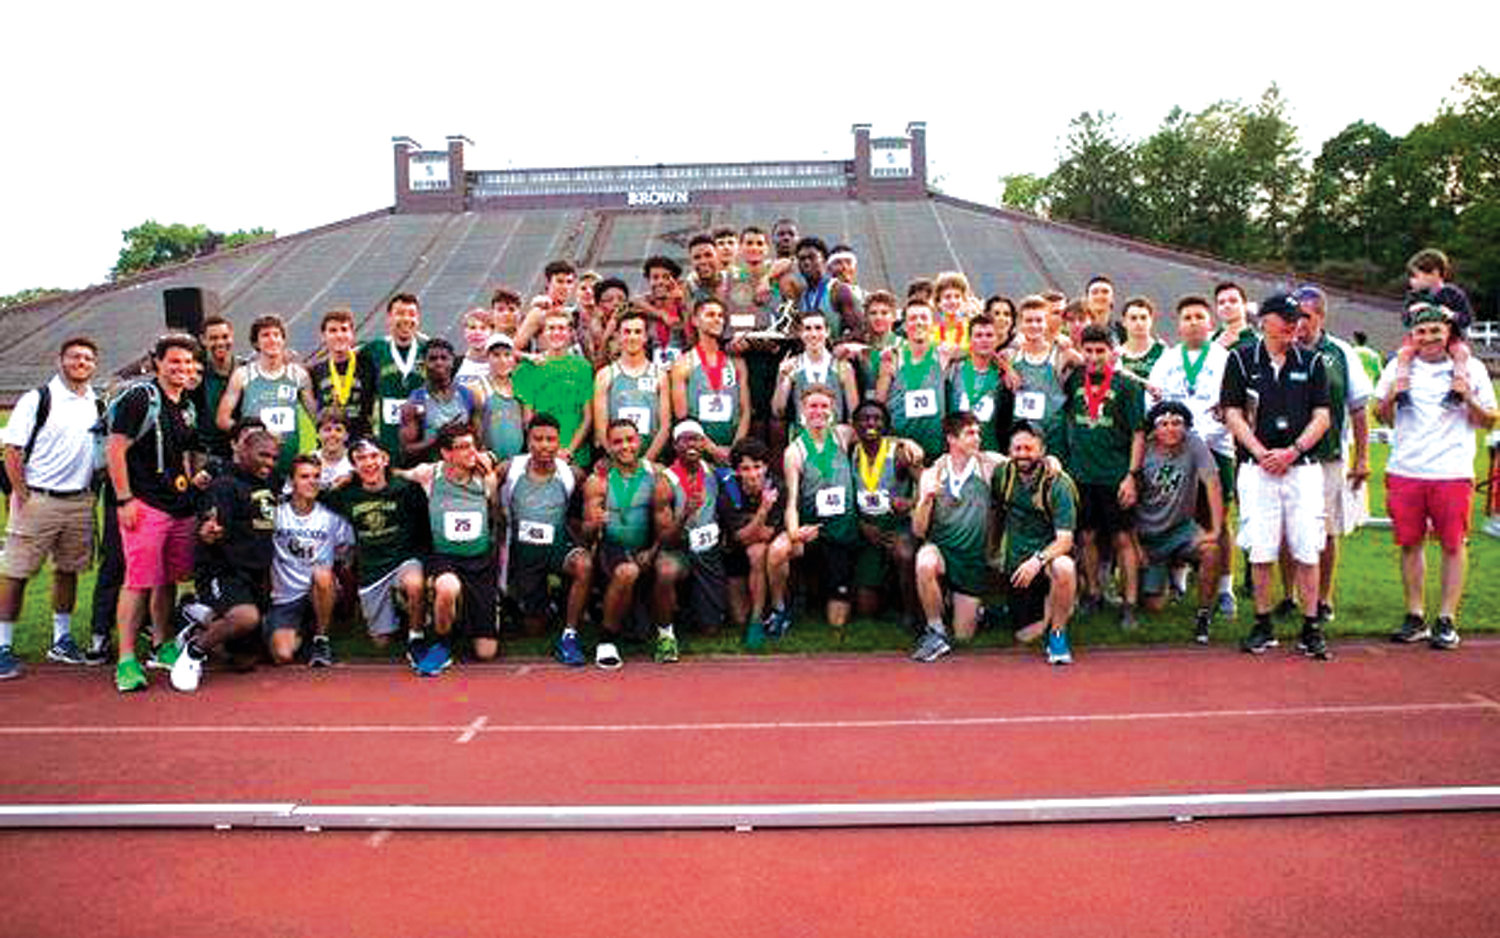 STATE CHAMPS: The 2019 Bishop Hendricken outdoor track and field team.